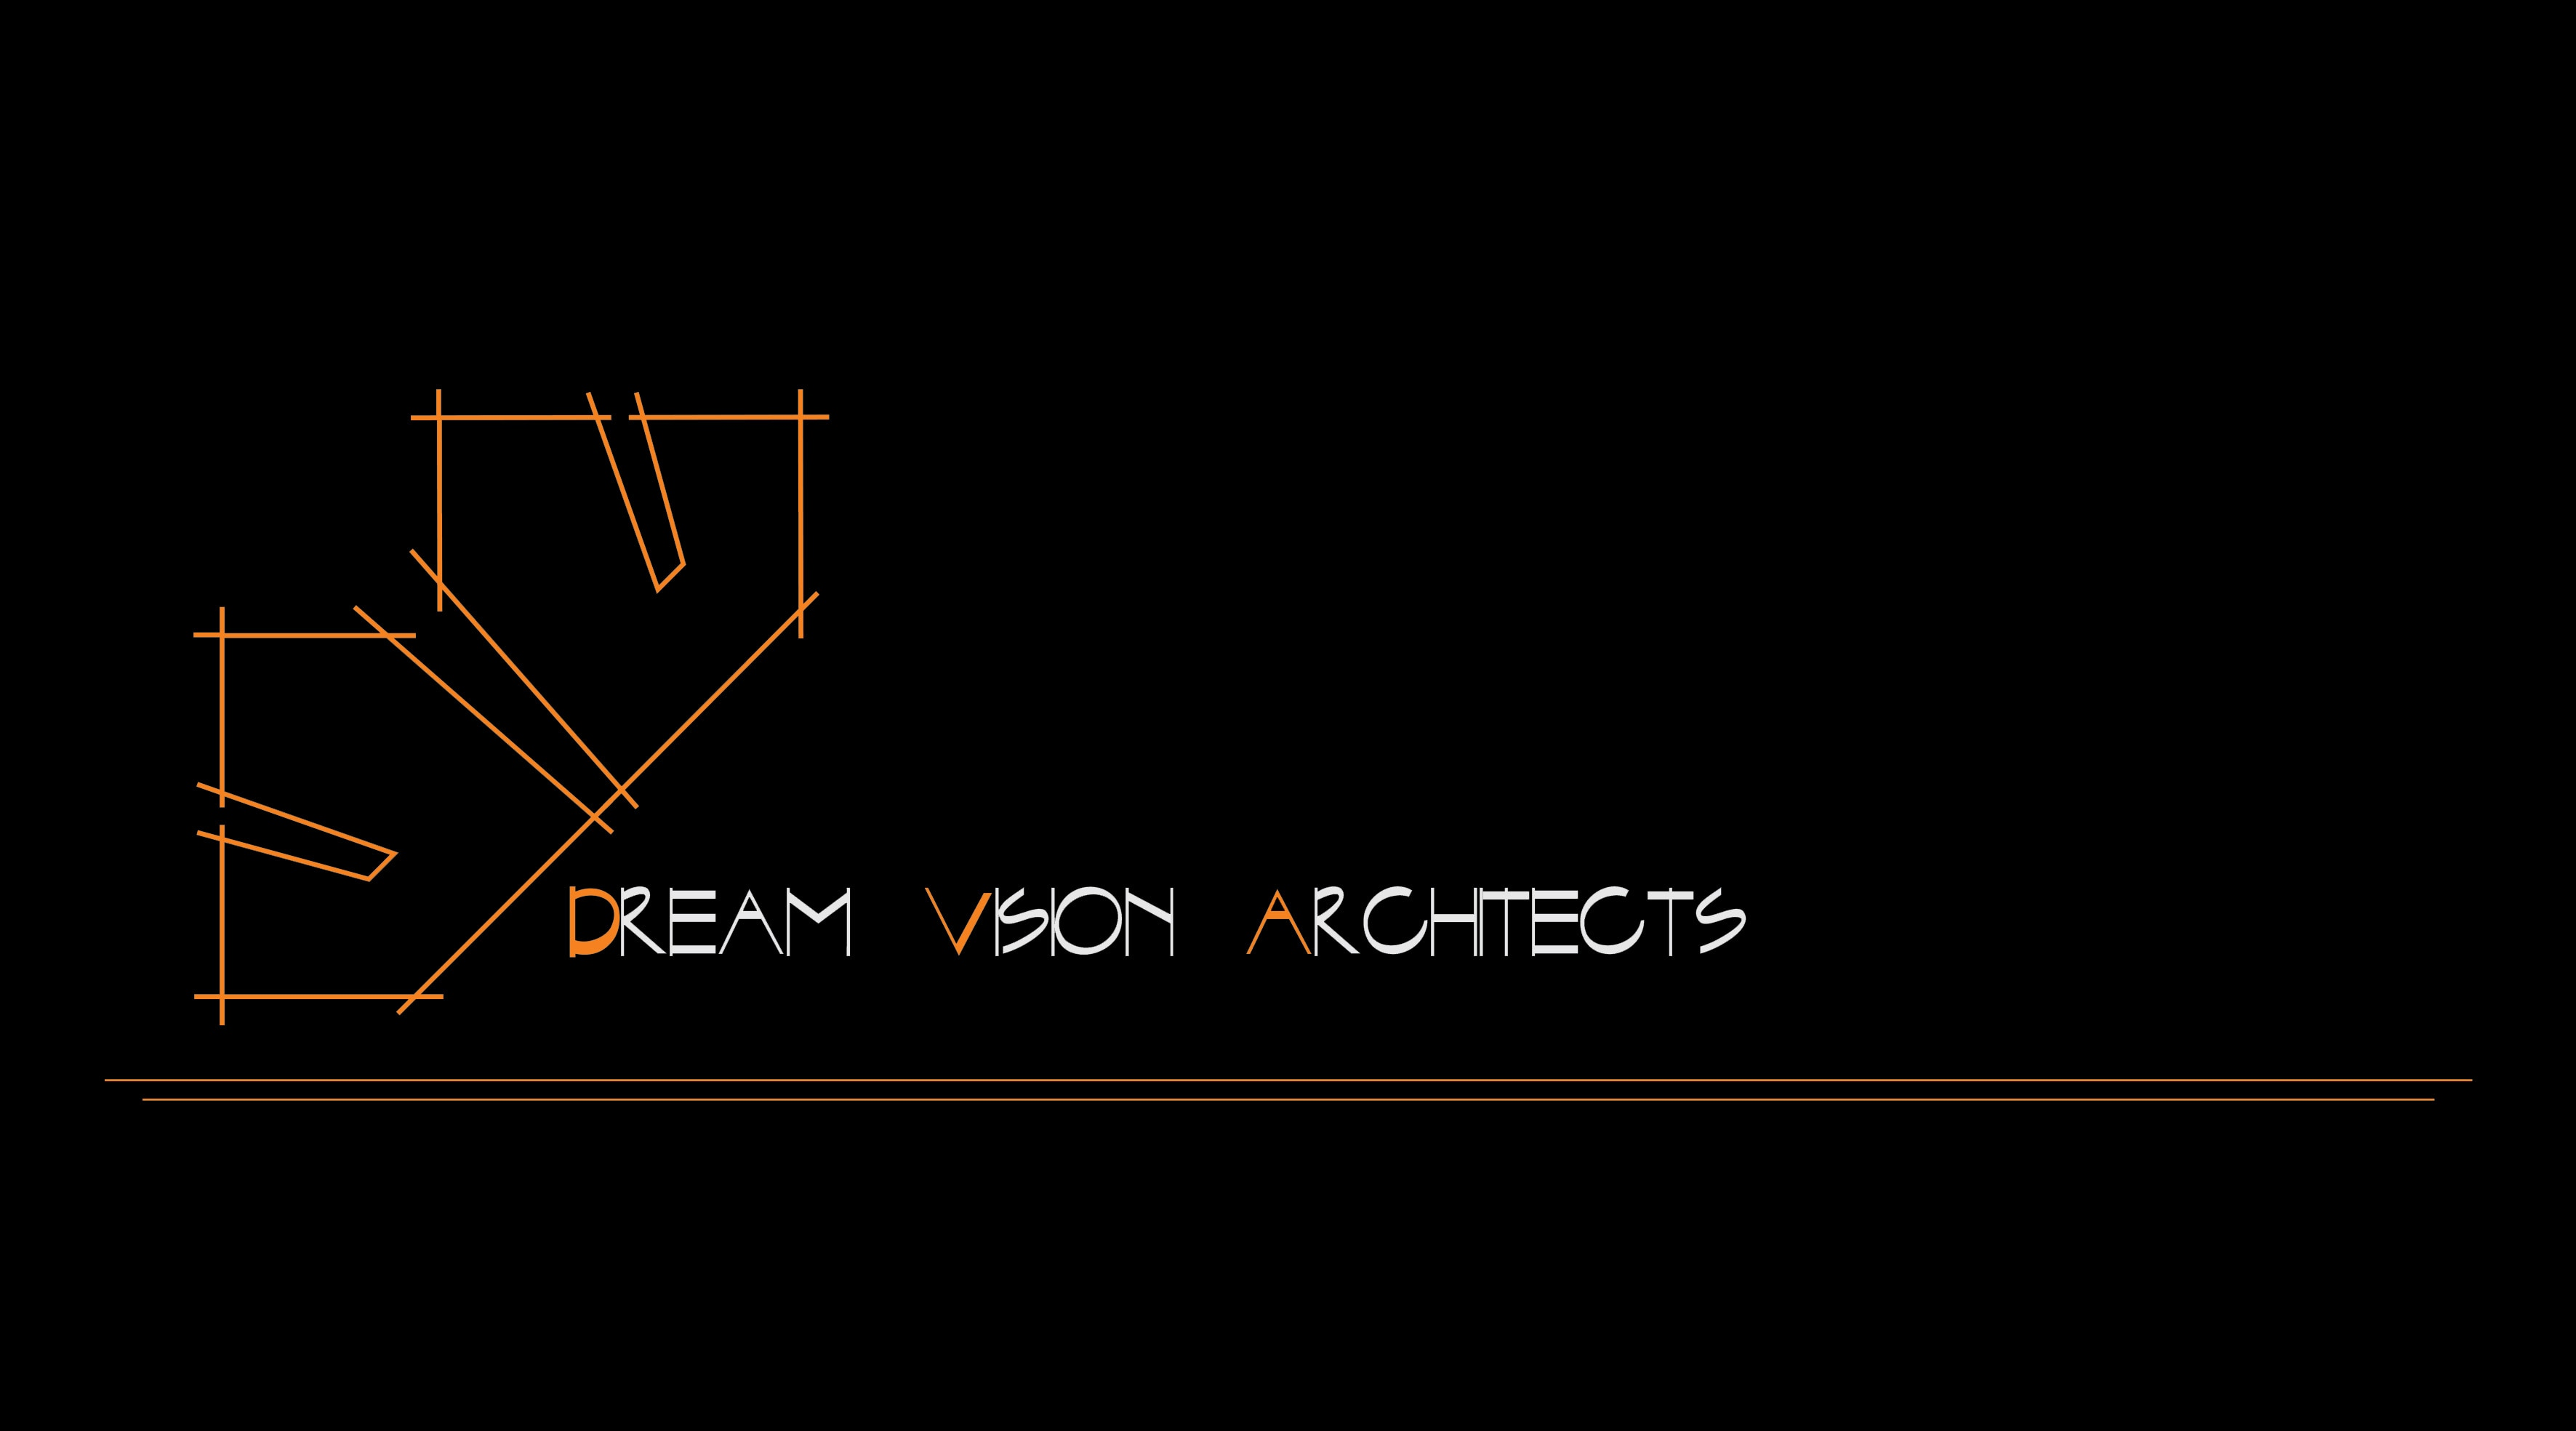 image of Dream Vision Architects